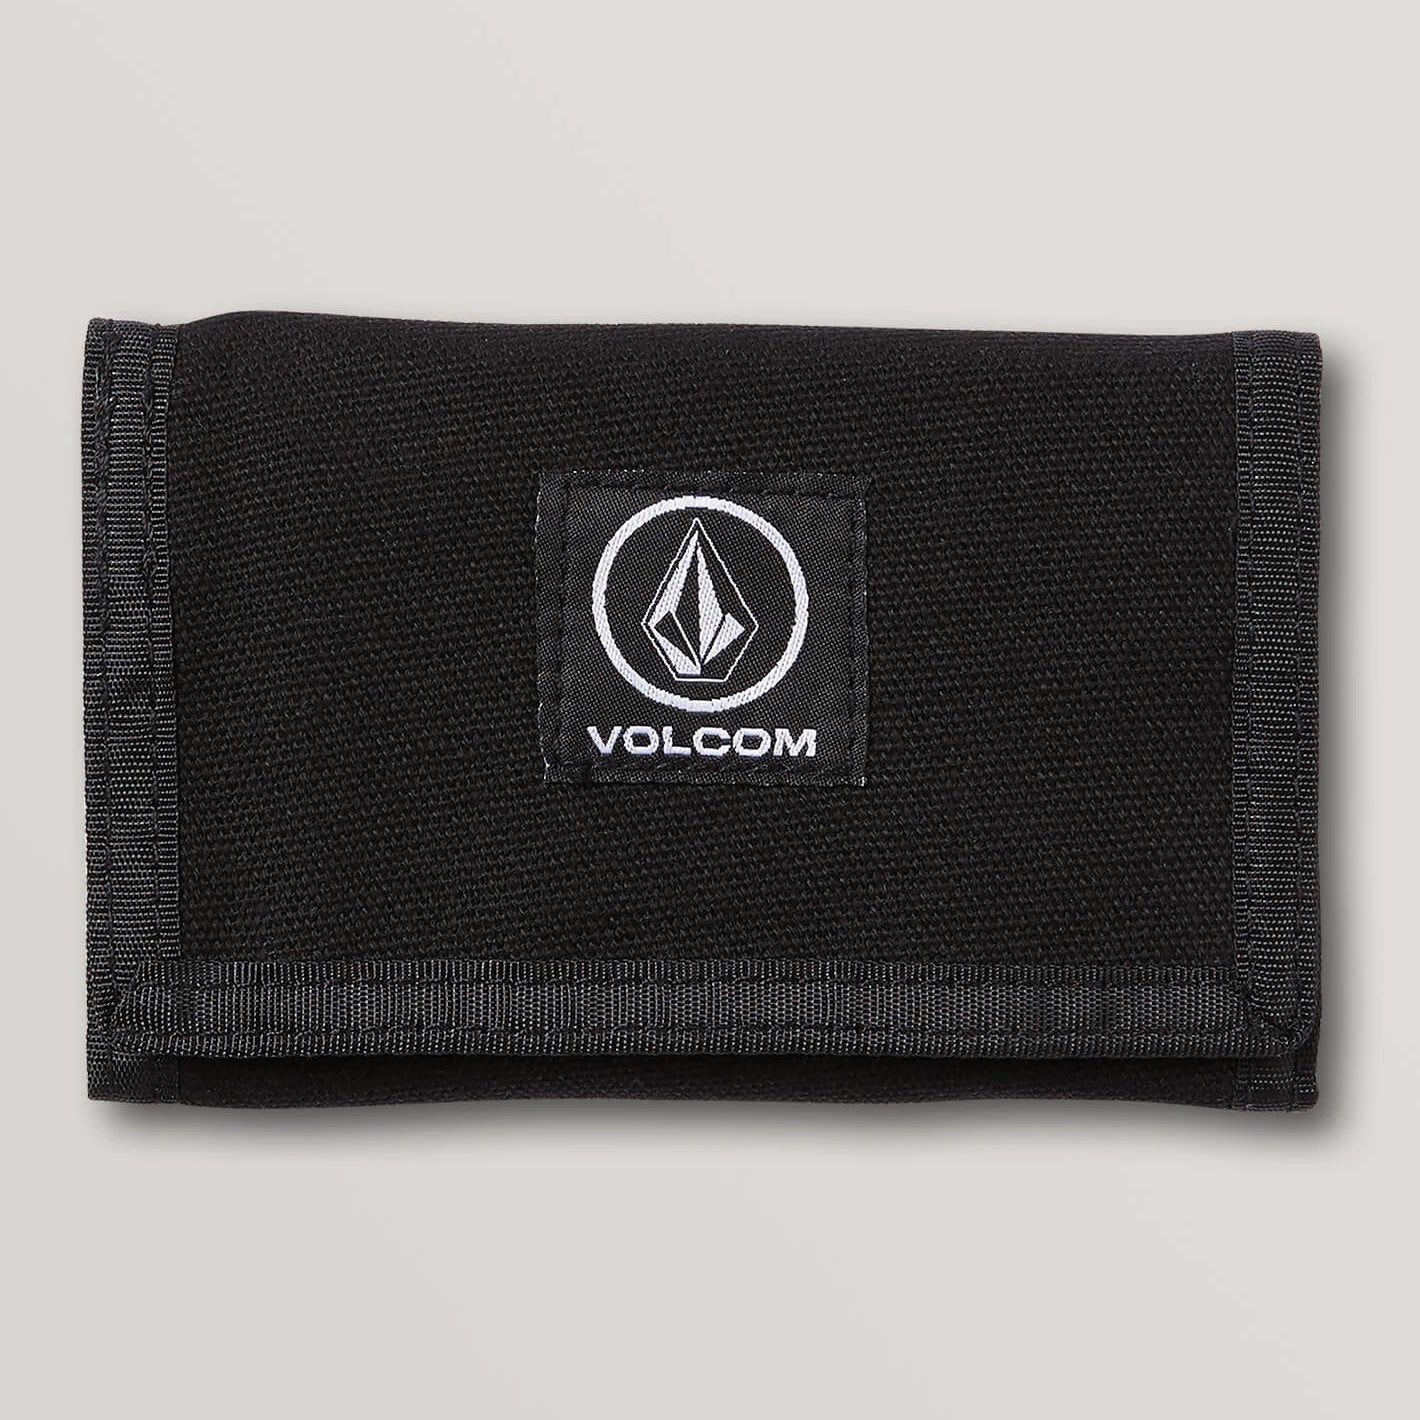 Volcom Box Stone Wallet - Black